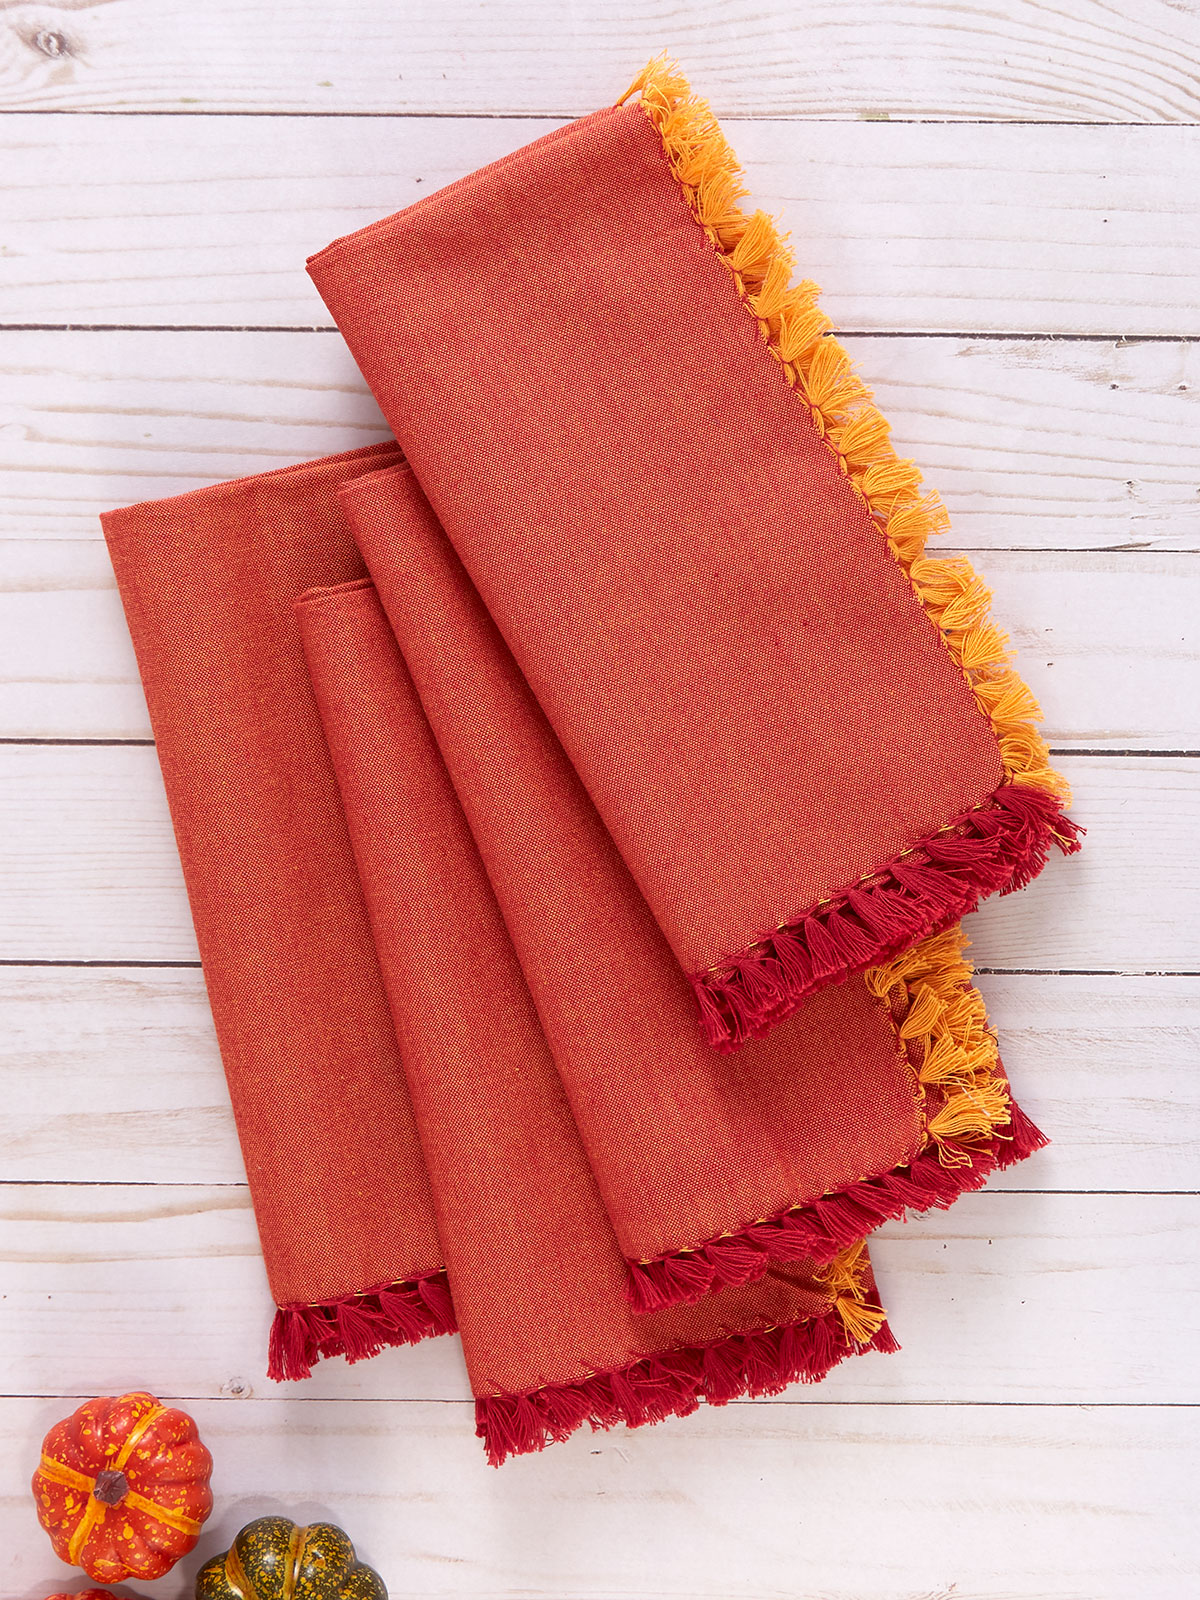 Chambray Napkin Set of 4 - Red/Orange